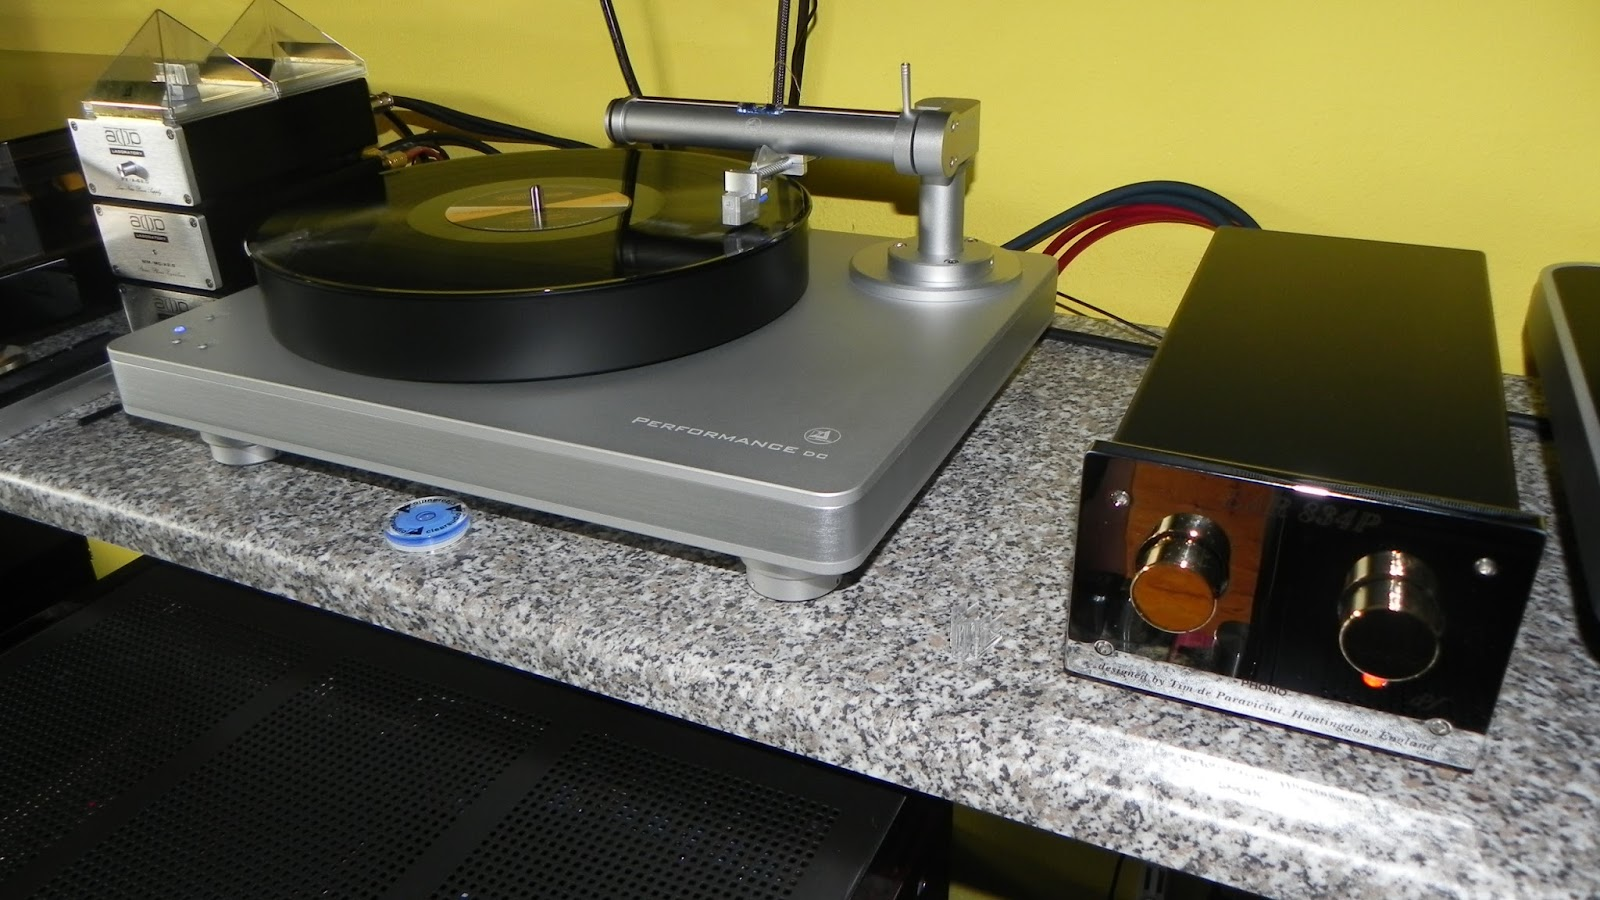 Clearaudio performance dc turntable package - We Are Currently Listening Your Lps With Clearaudio Performance In Combination With Ear Phono Stage Accuphase Amplification And Legendary Acoustic Research